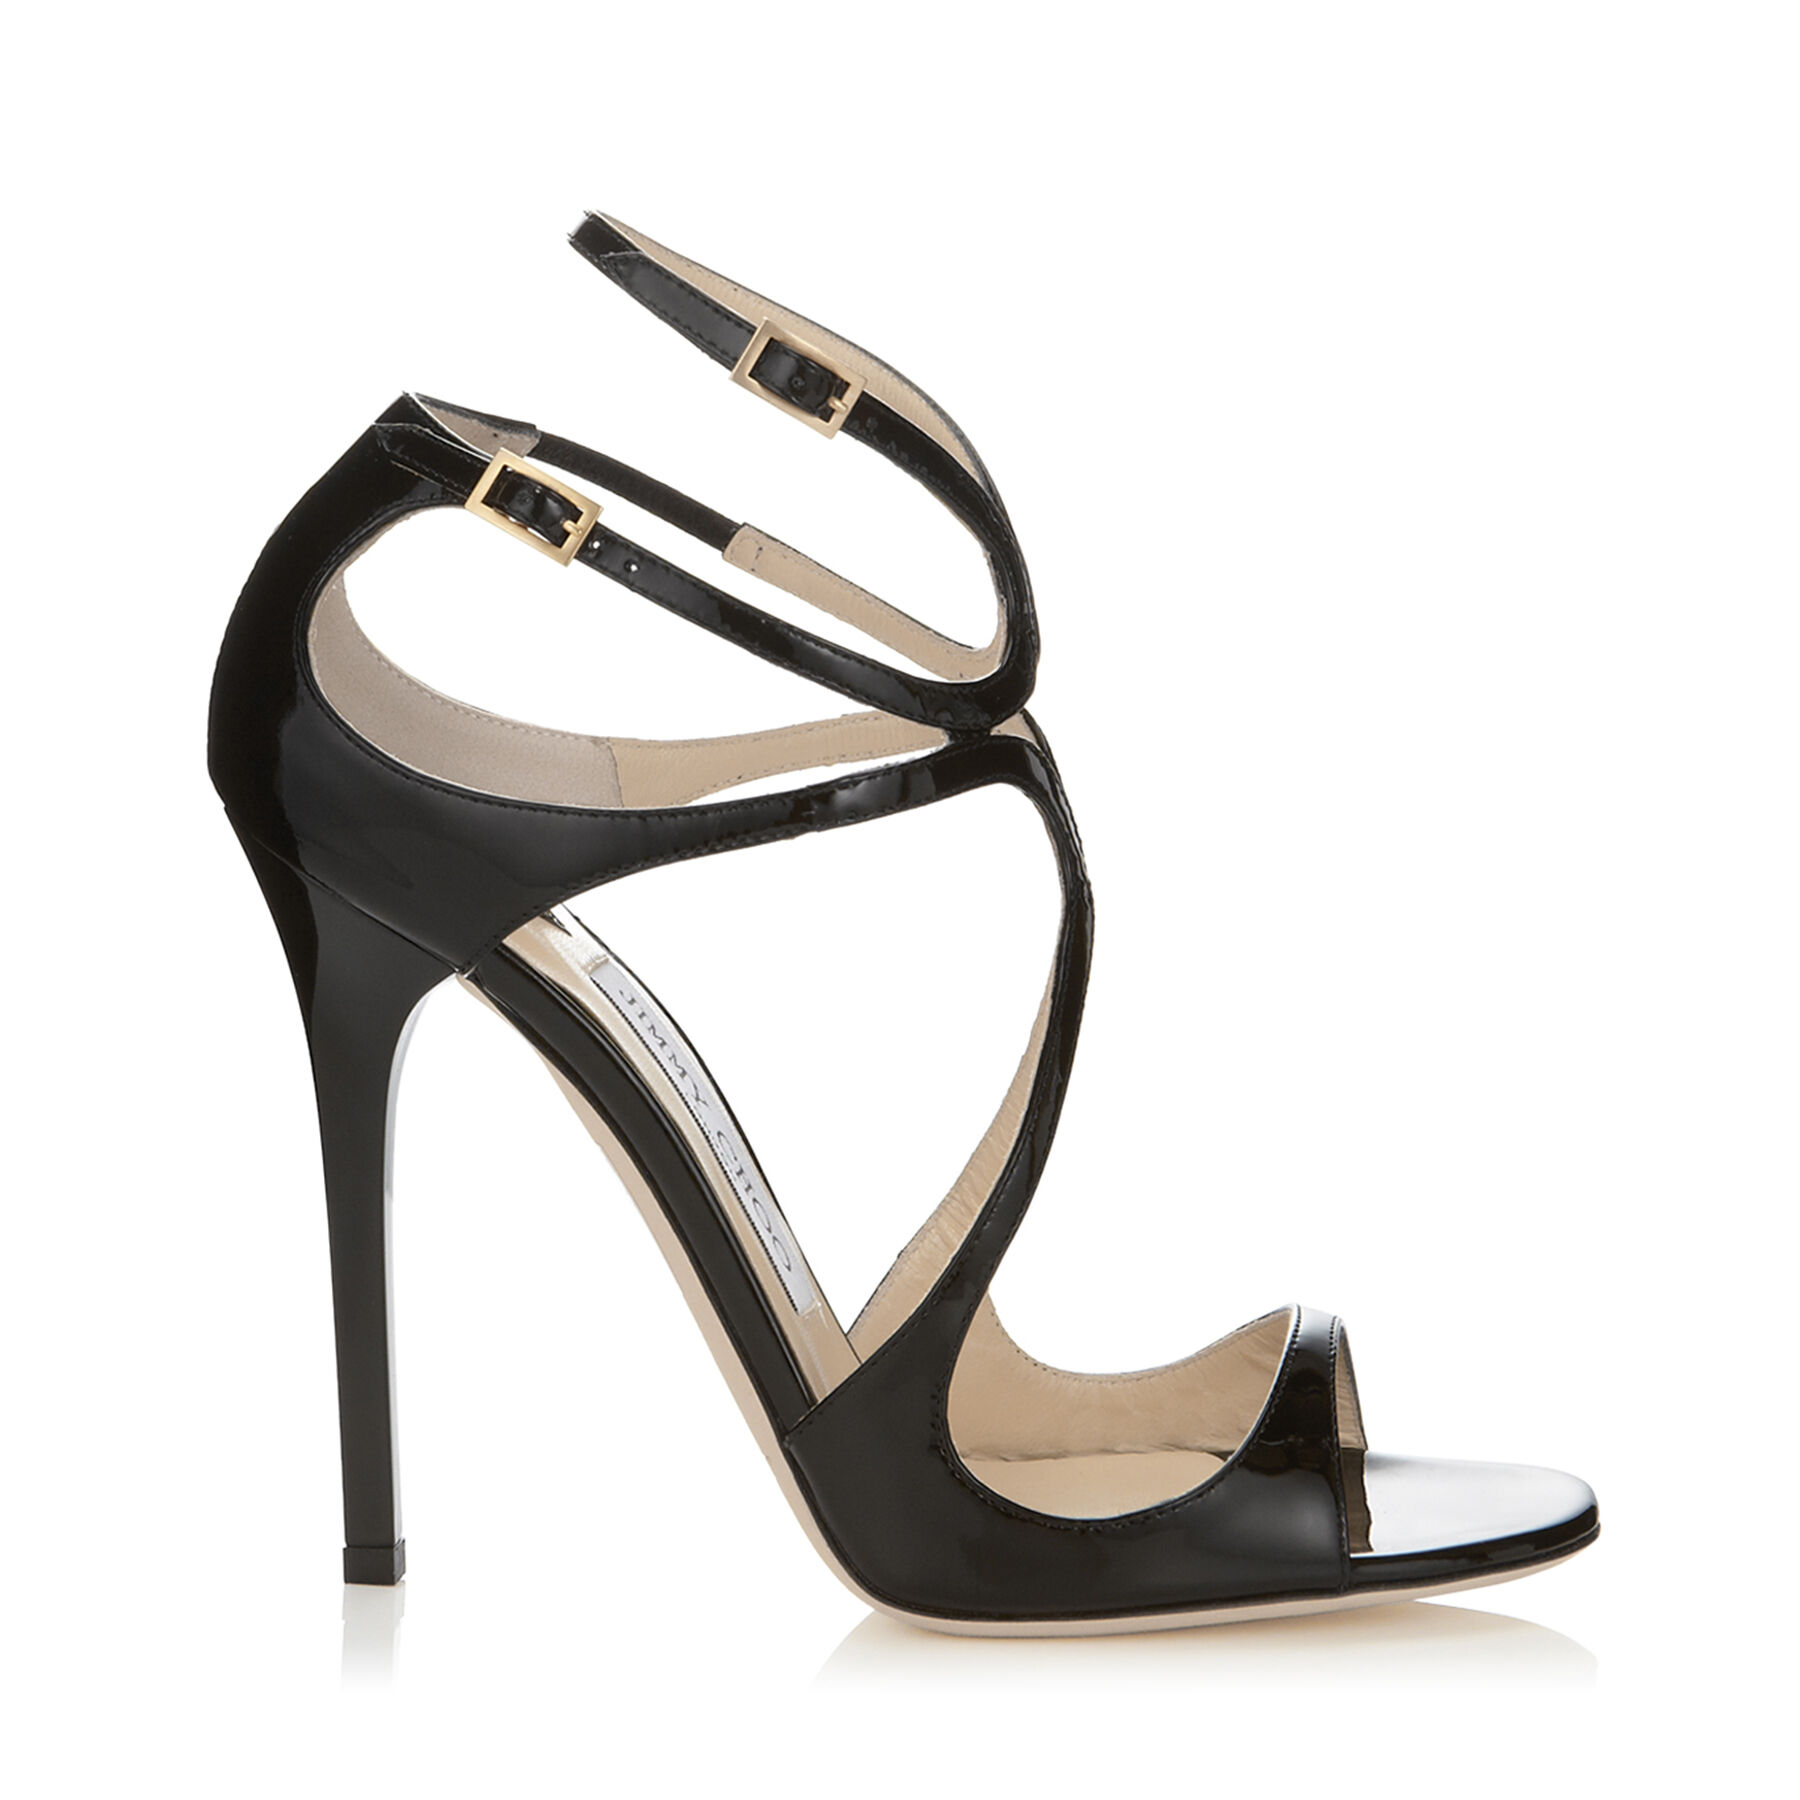 Black Patent Leather Sandals | Strappy